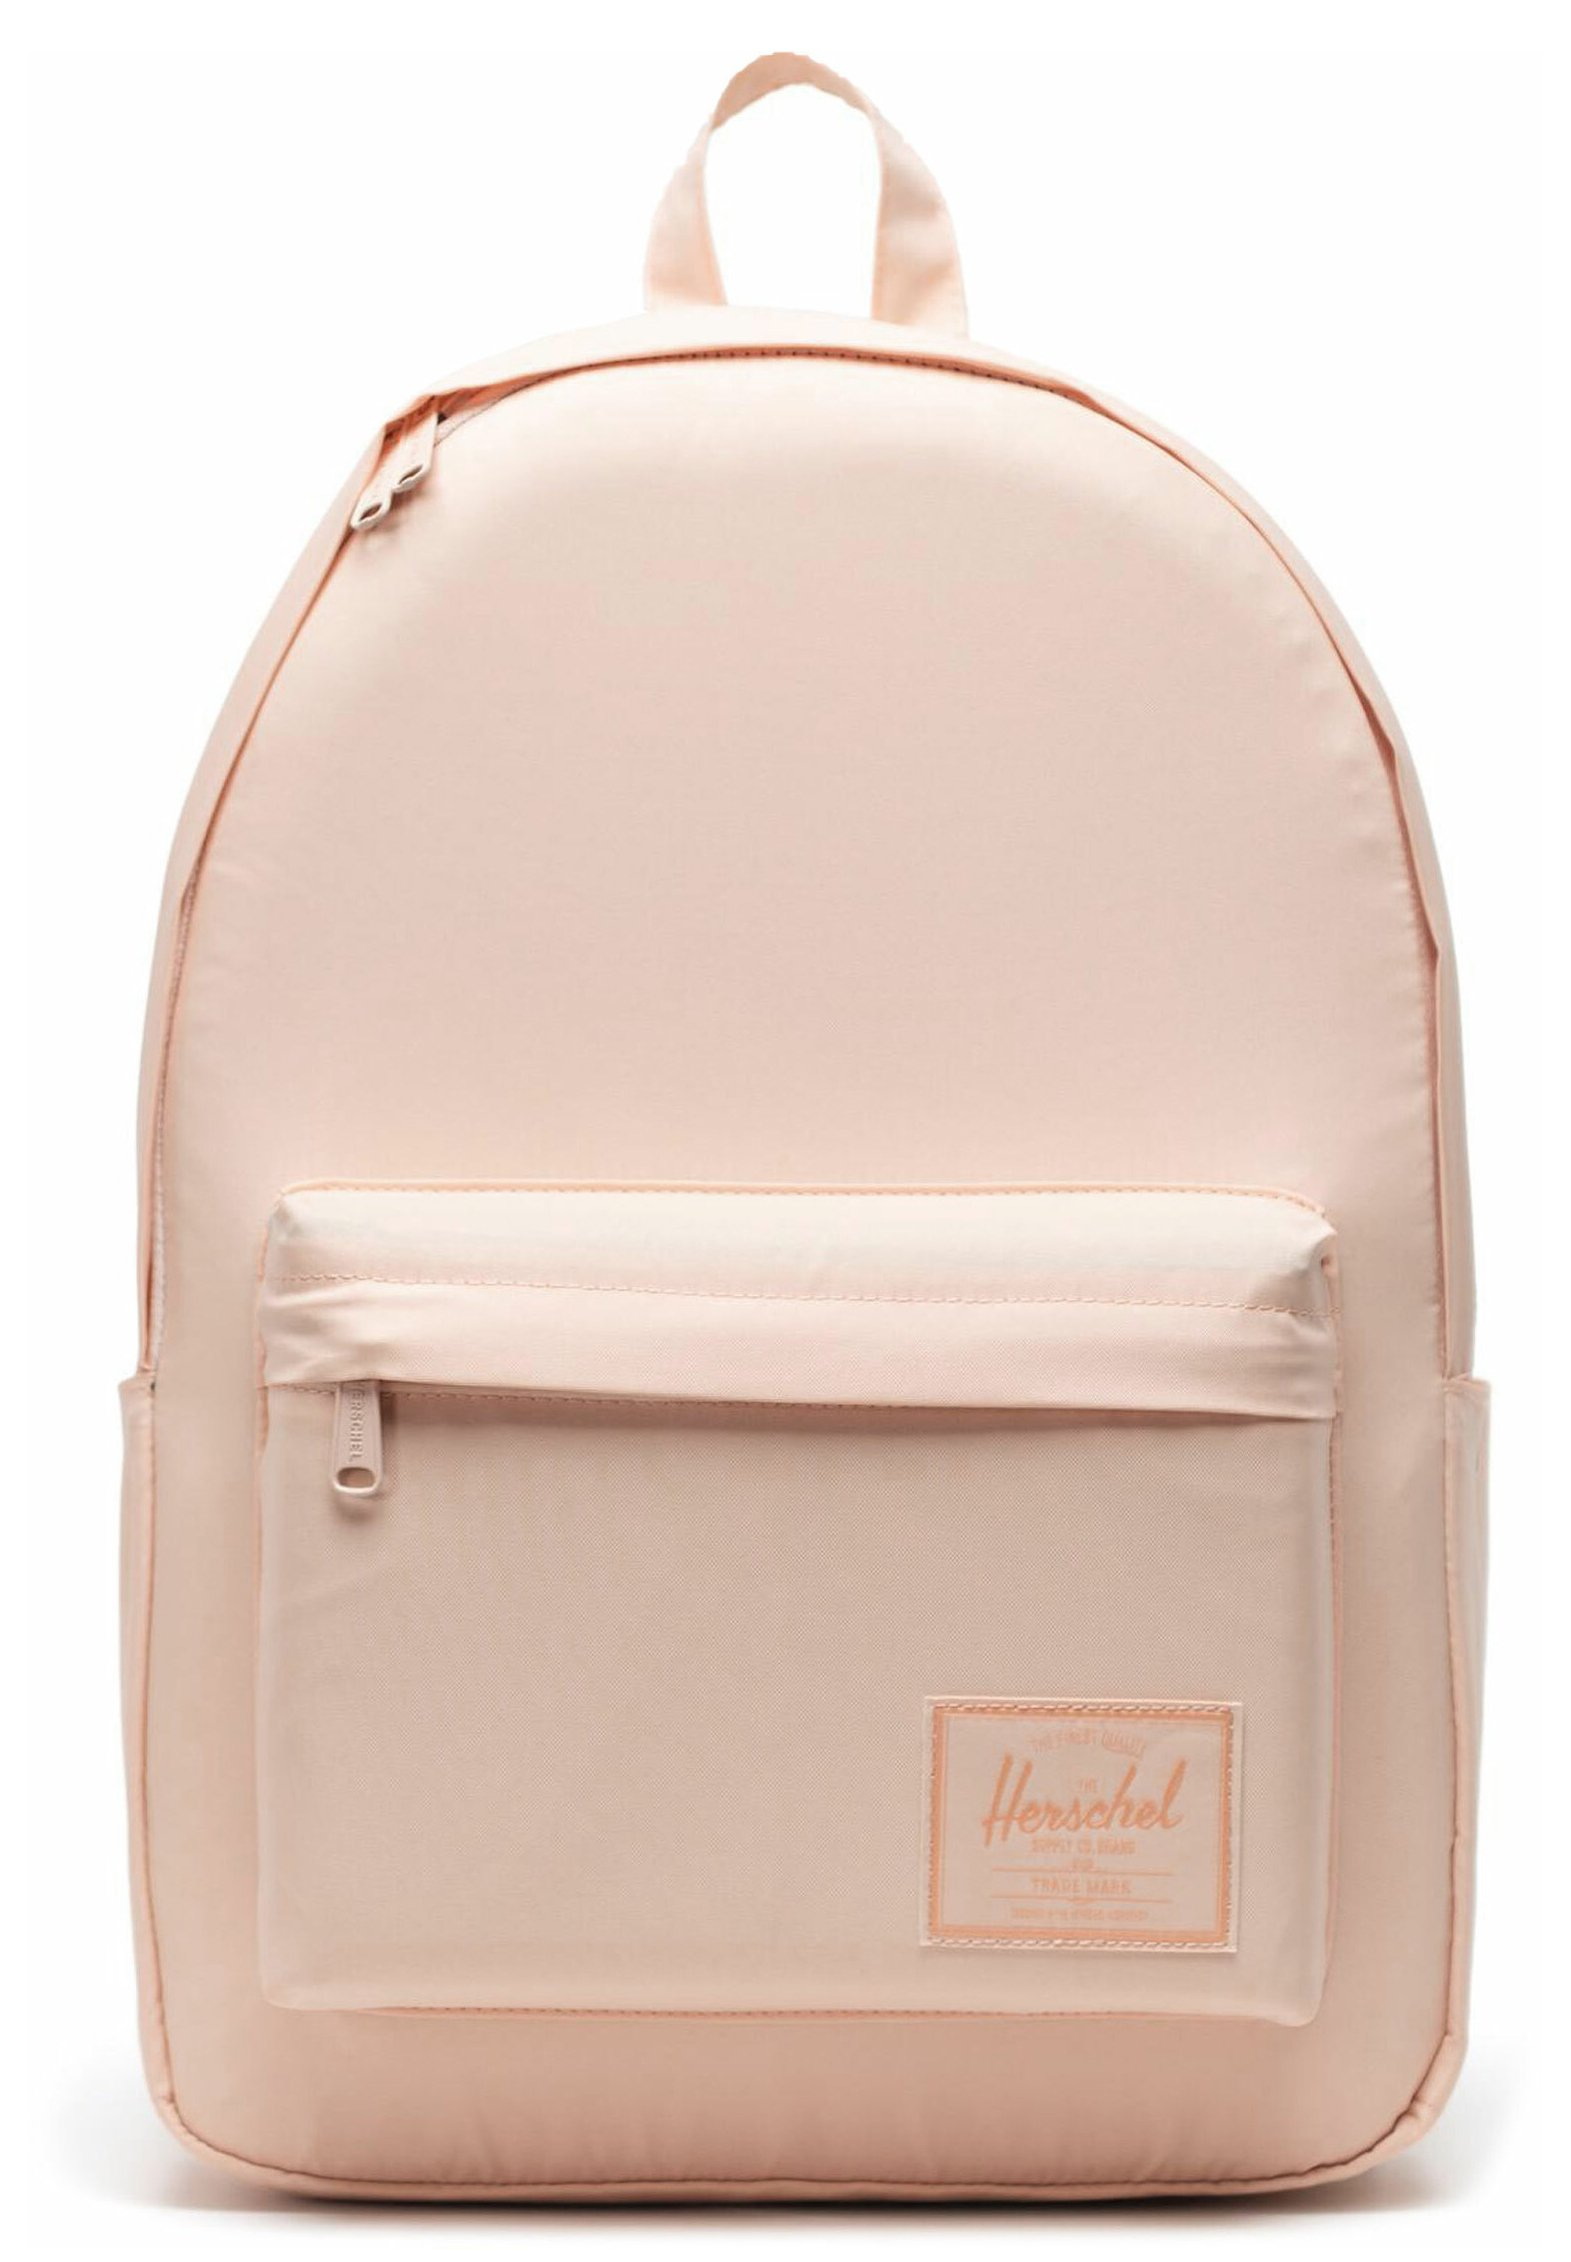 Herschel Bolsa grande de deporte Novel New